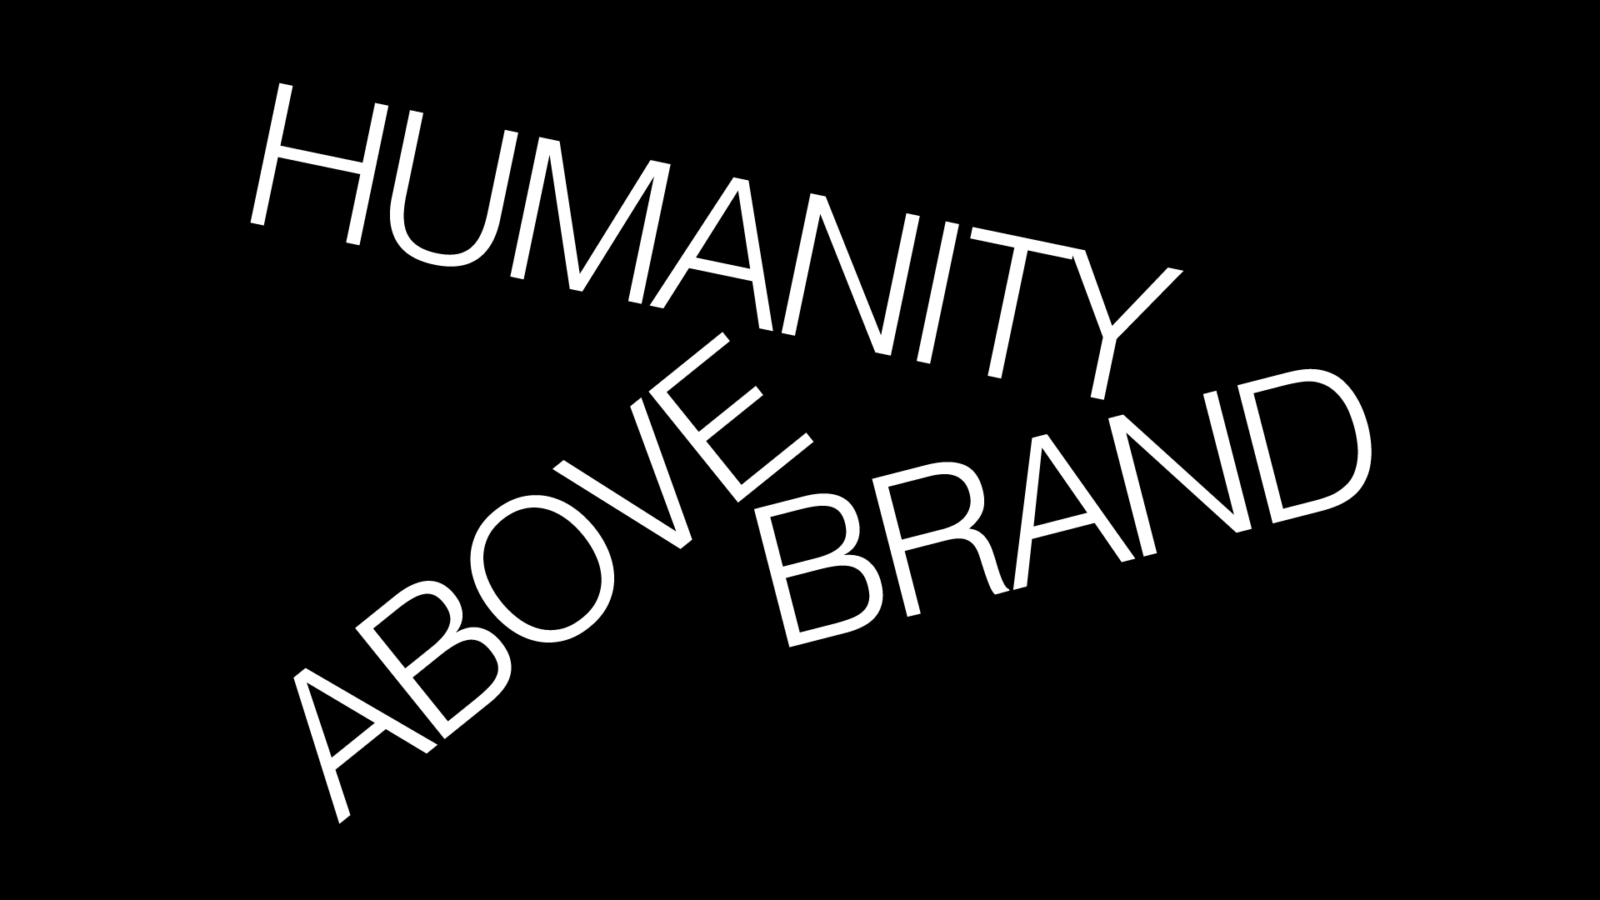 Humanity Above Brand